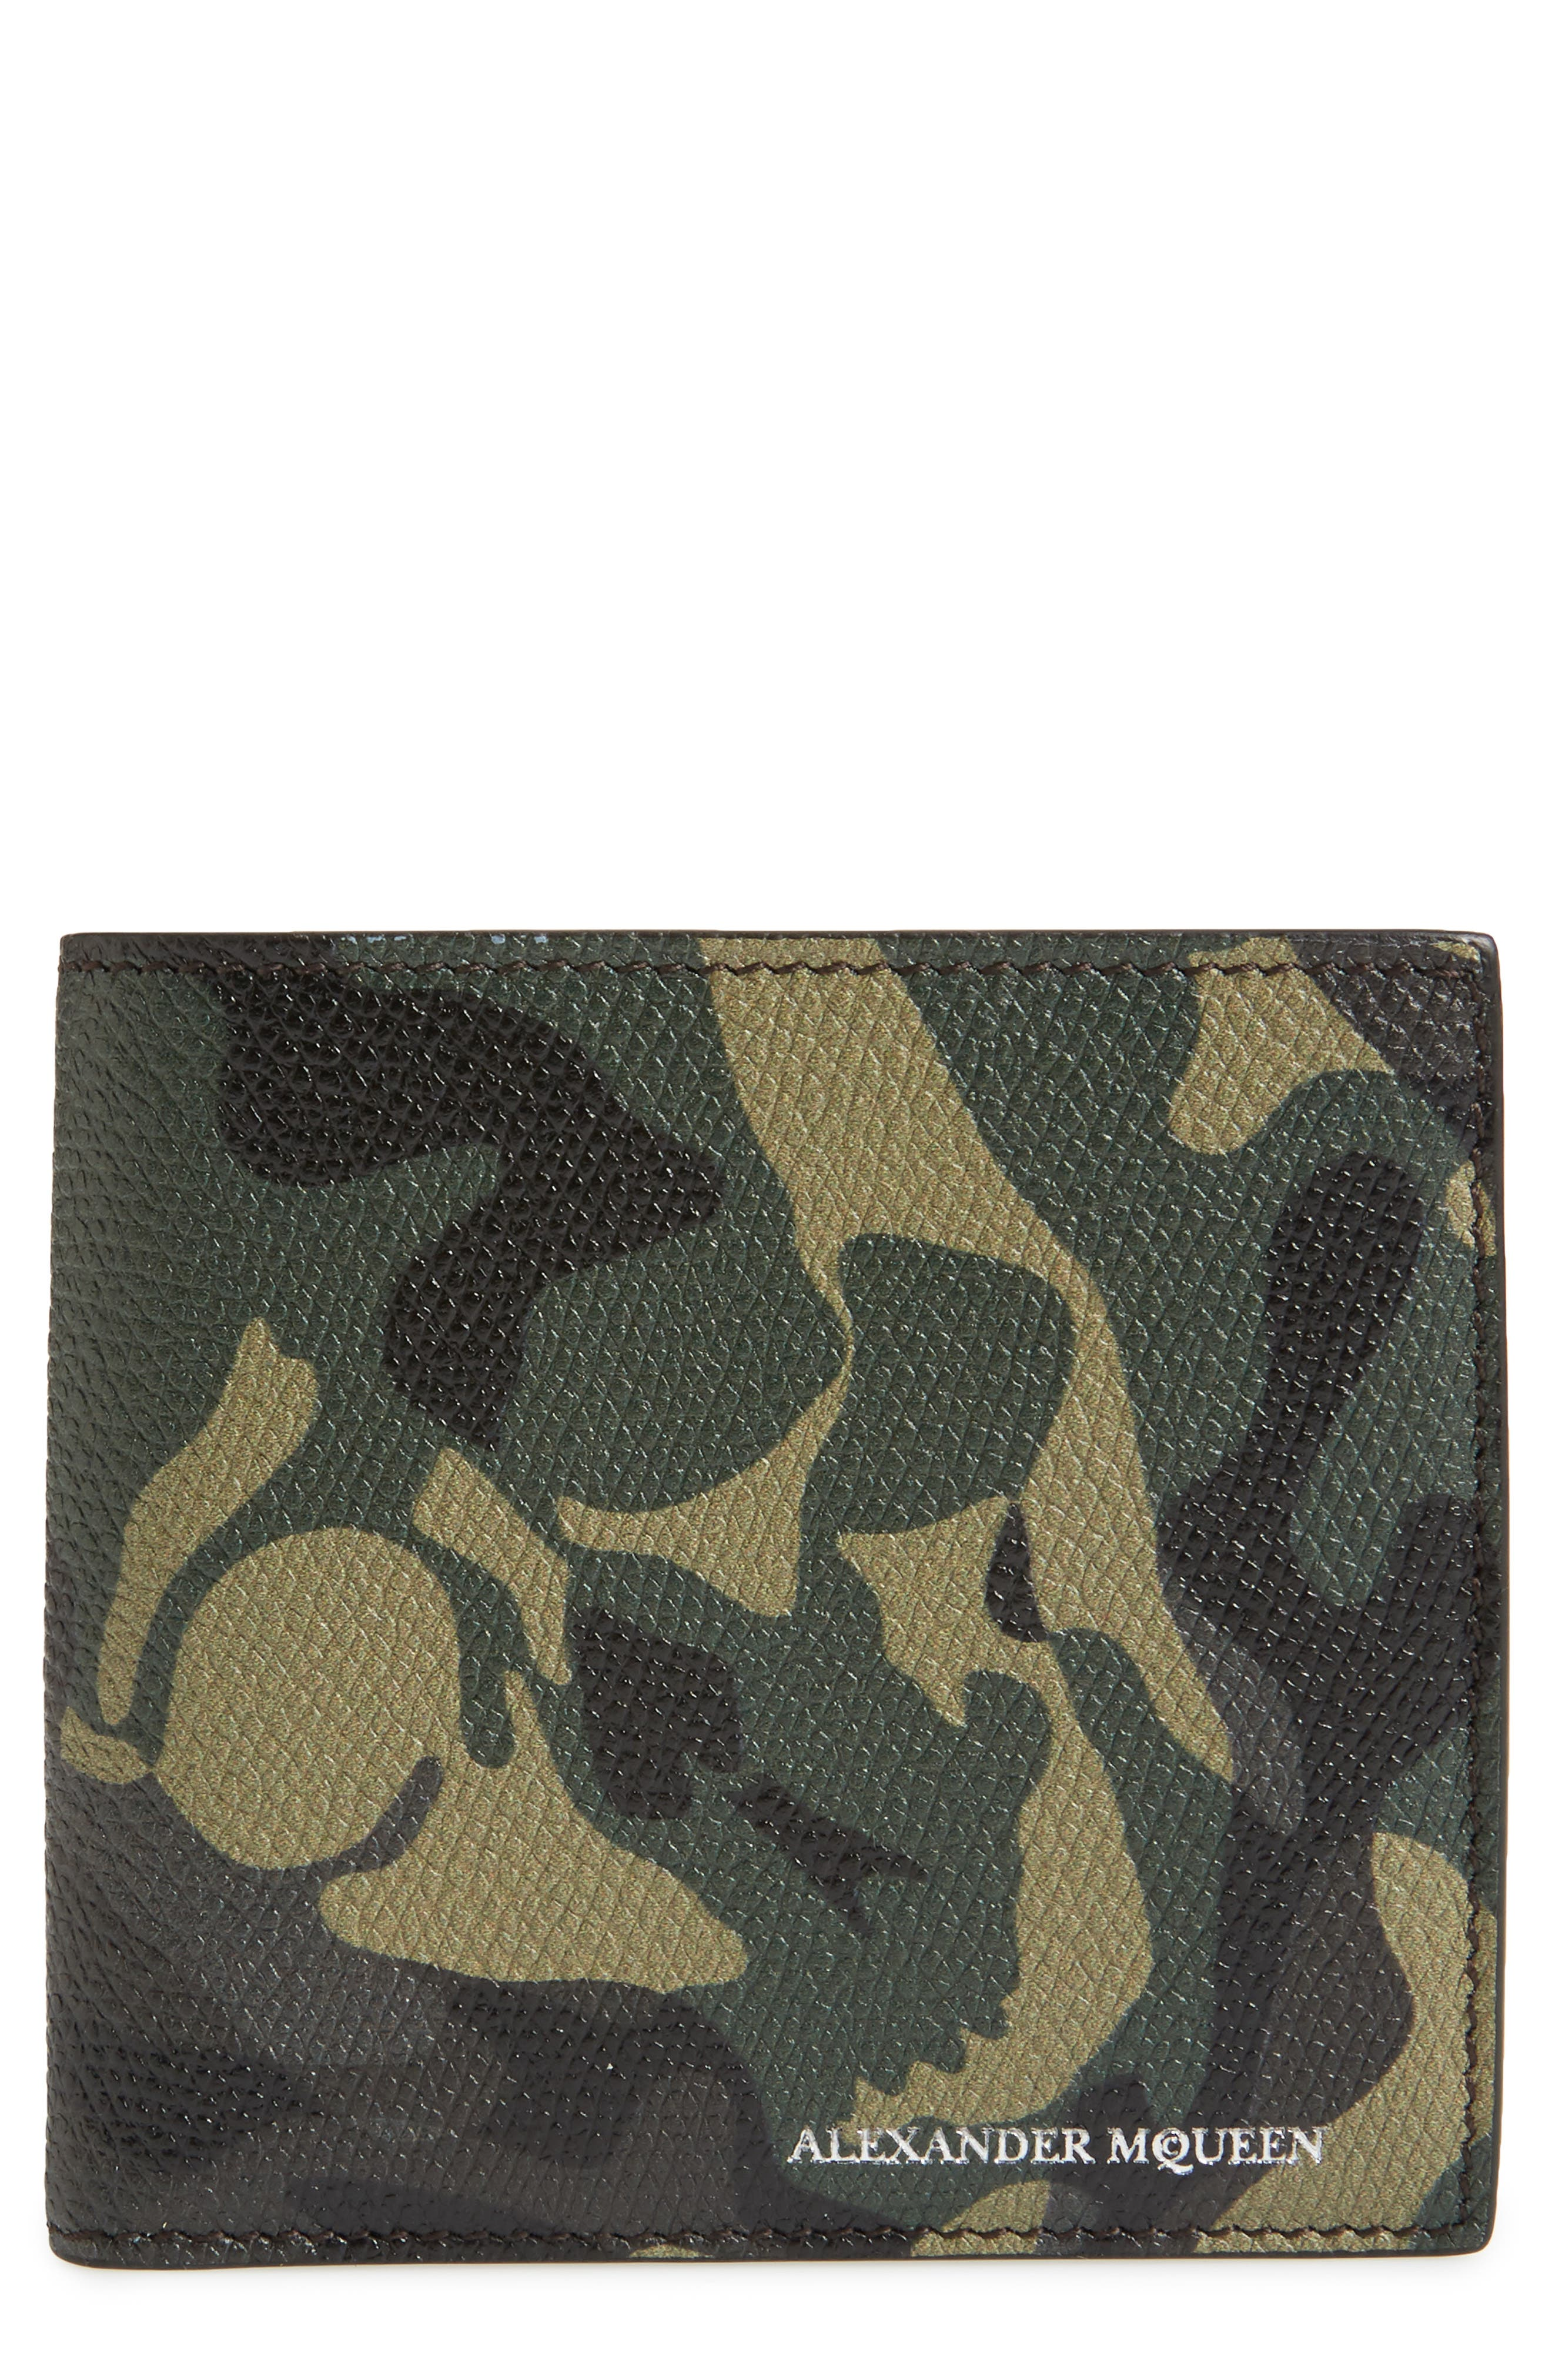 Camo Leather Billfold Wallet,                         Main,                         color, Black/ Military